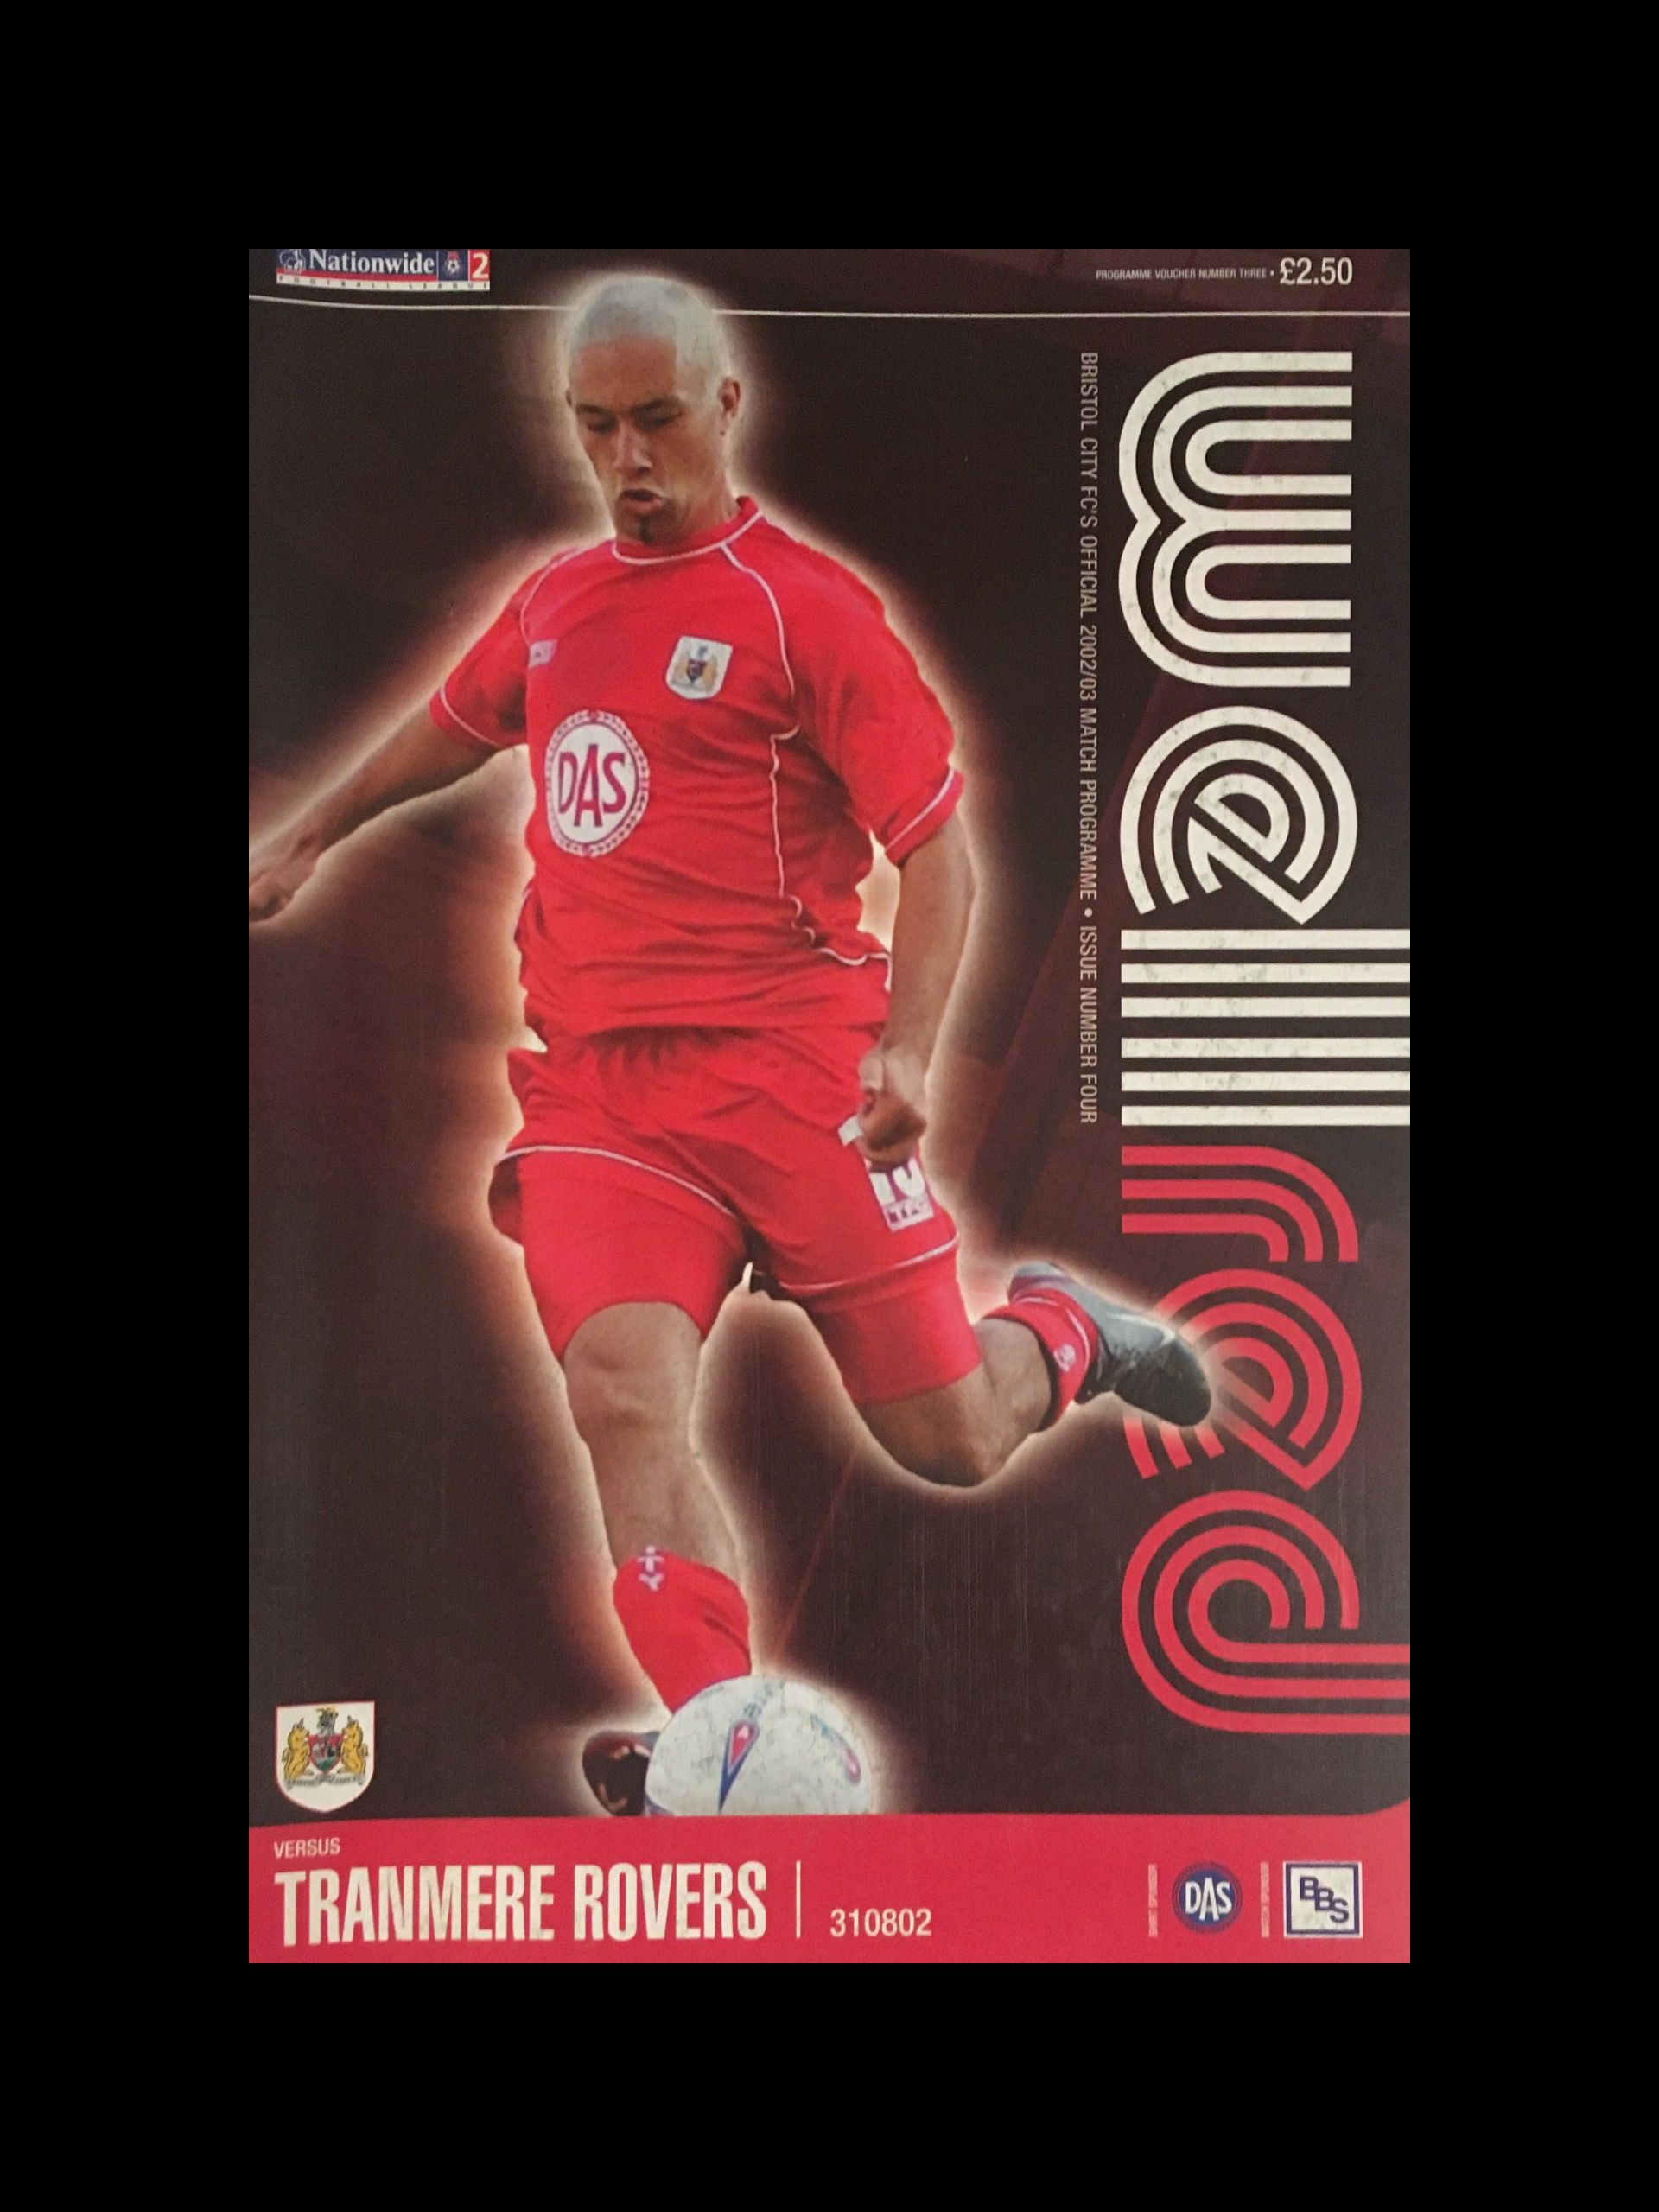 Bristol City v Tranmere Rovers 31-08-2002 Programme